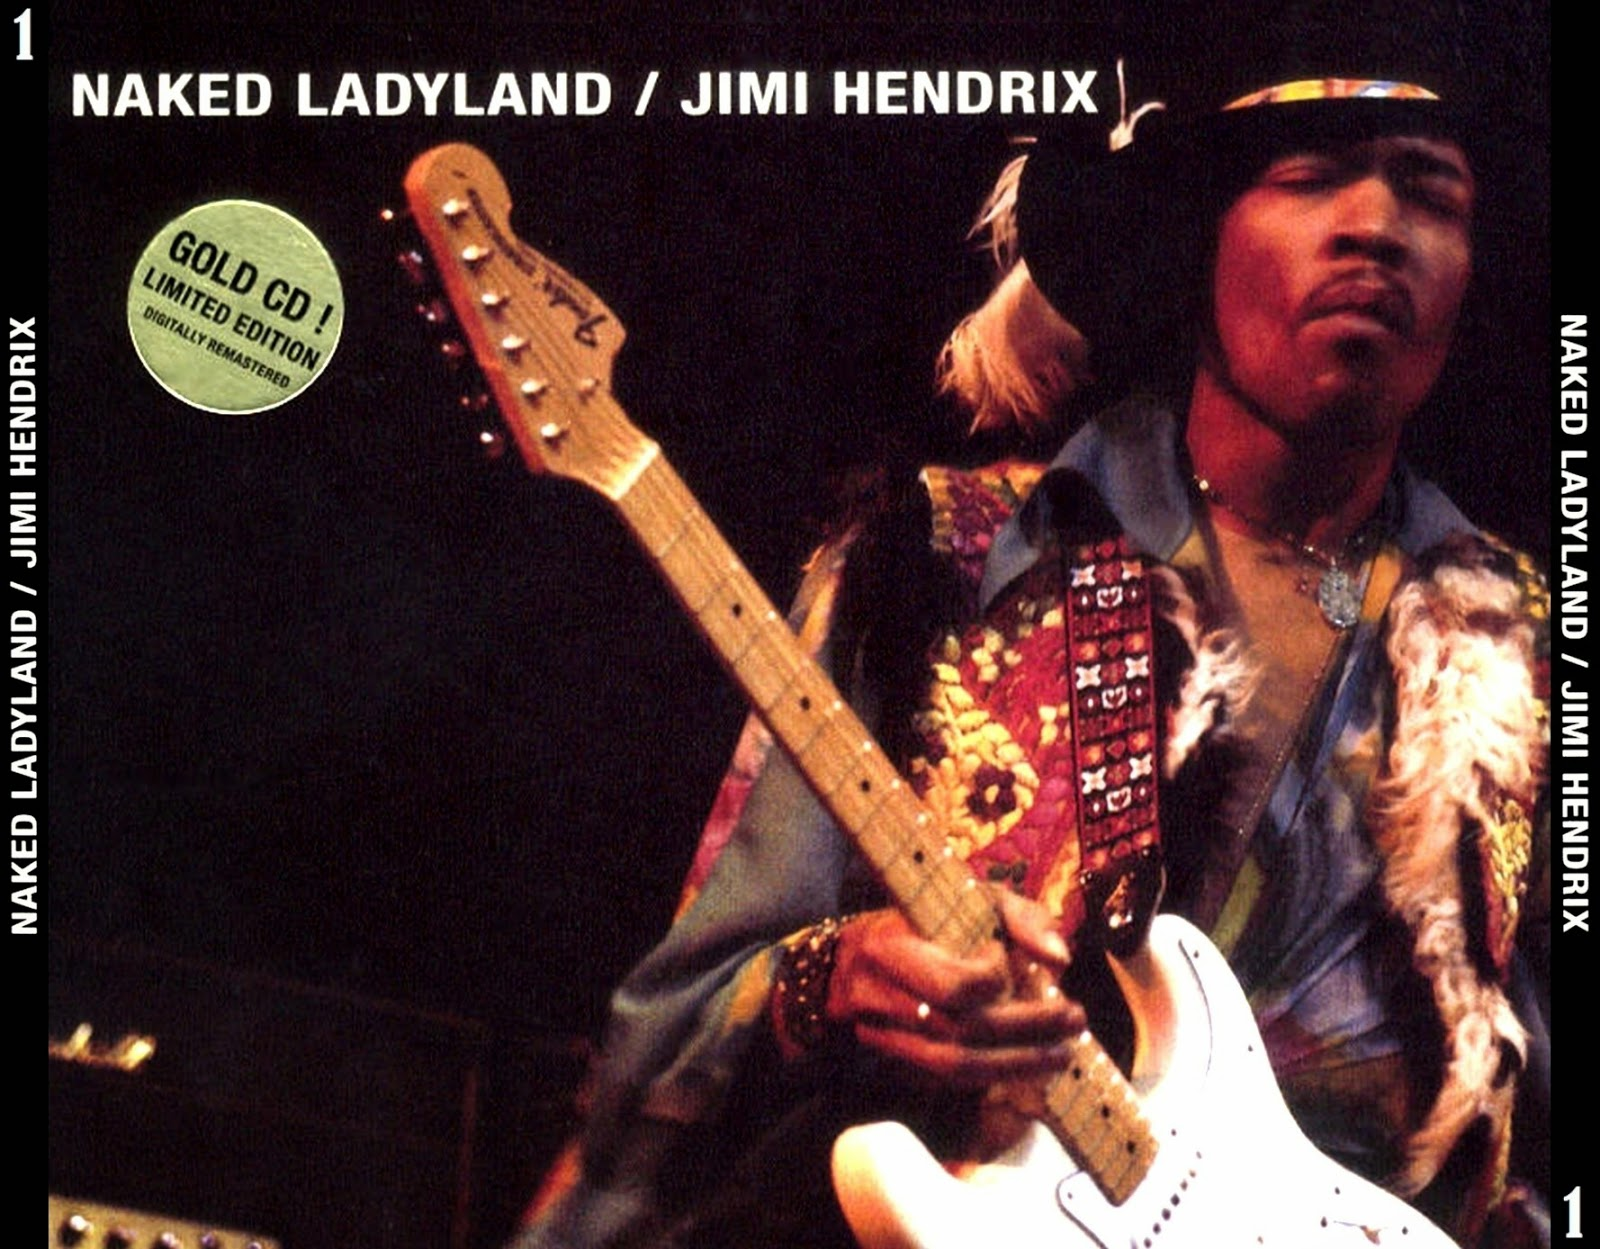 electric ladyland free mp3 download